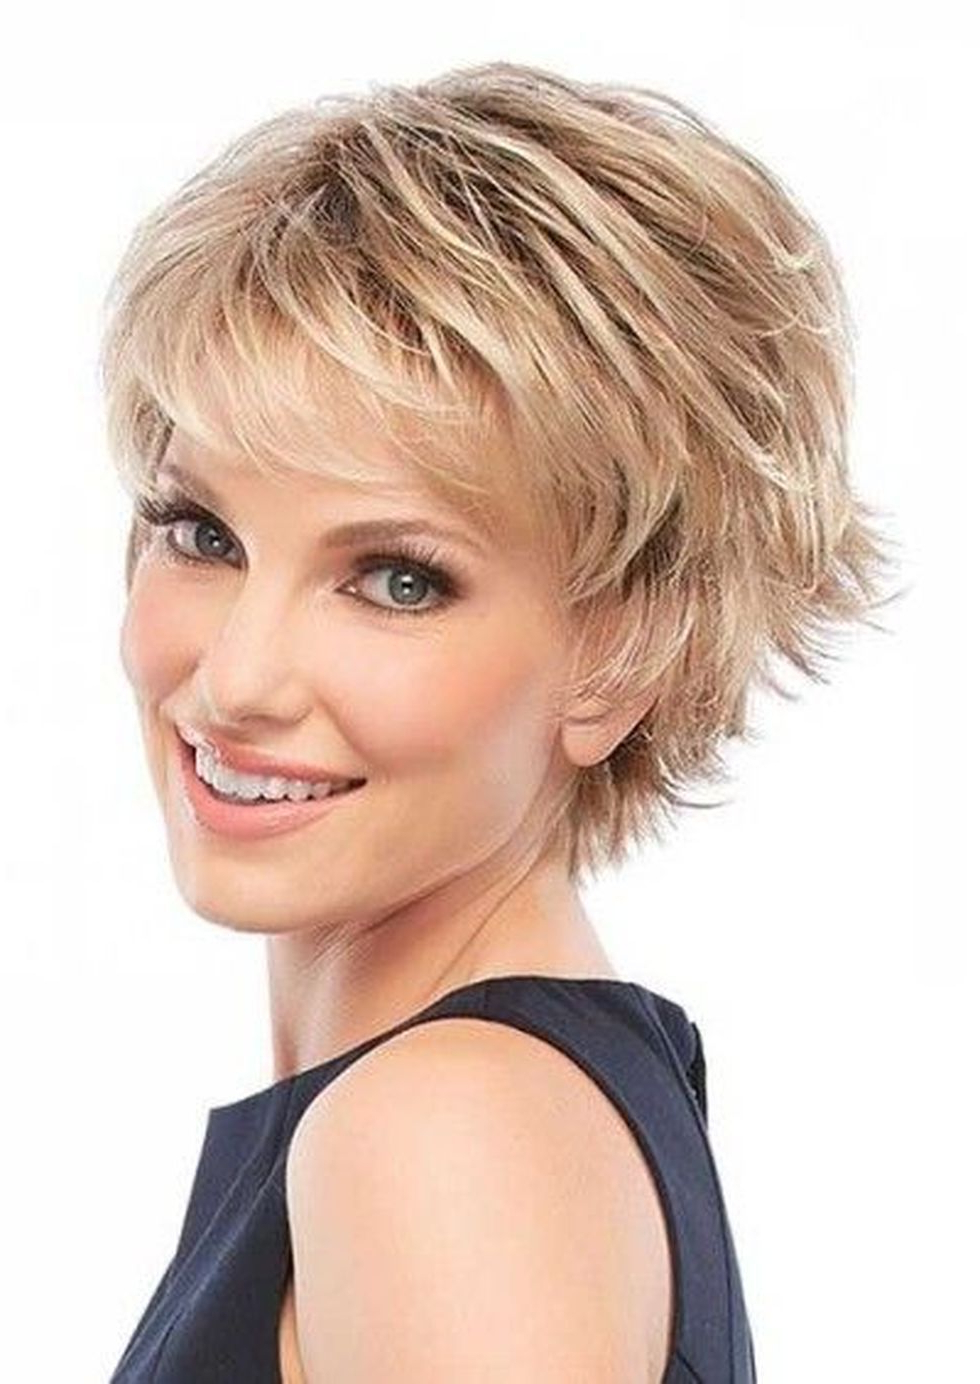 Fabulous Over 50 Short Hairstyle Ideas 68 | Short Hairstyle With Regard To Short Women Hairstyles Over  (View 19 of 25)